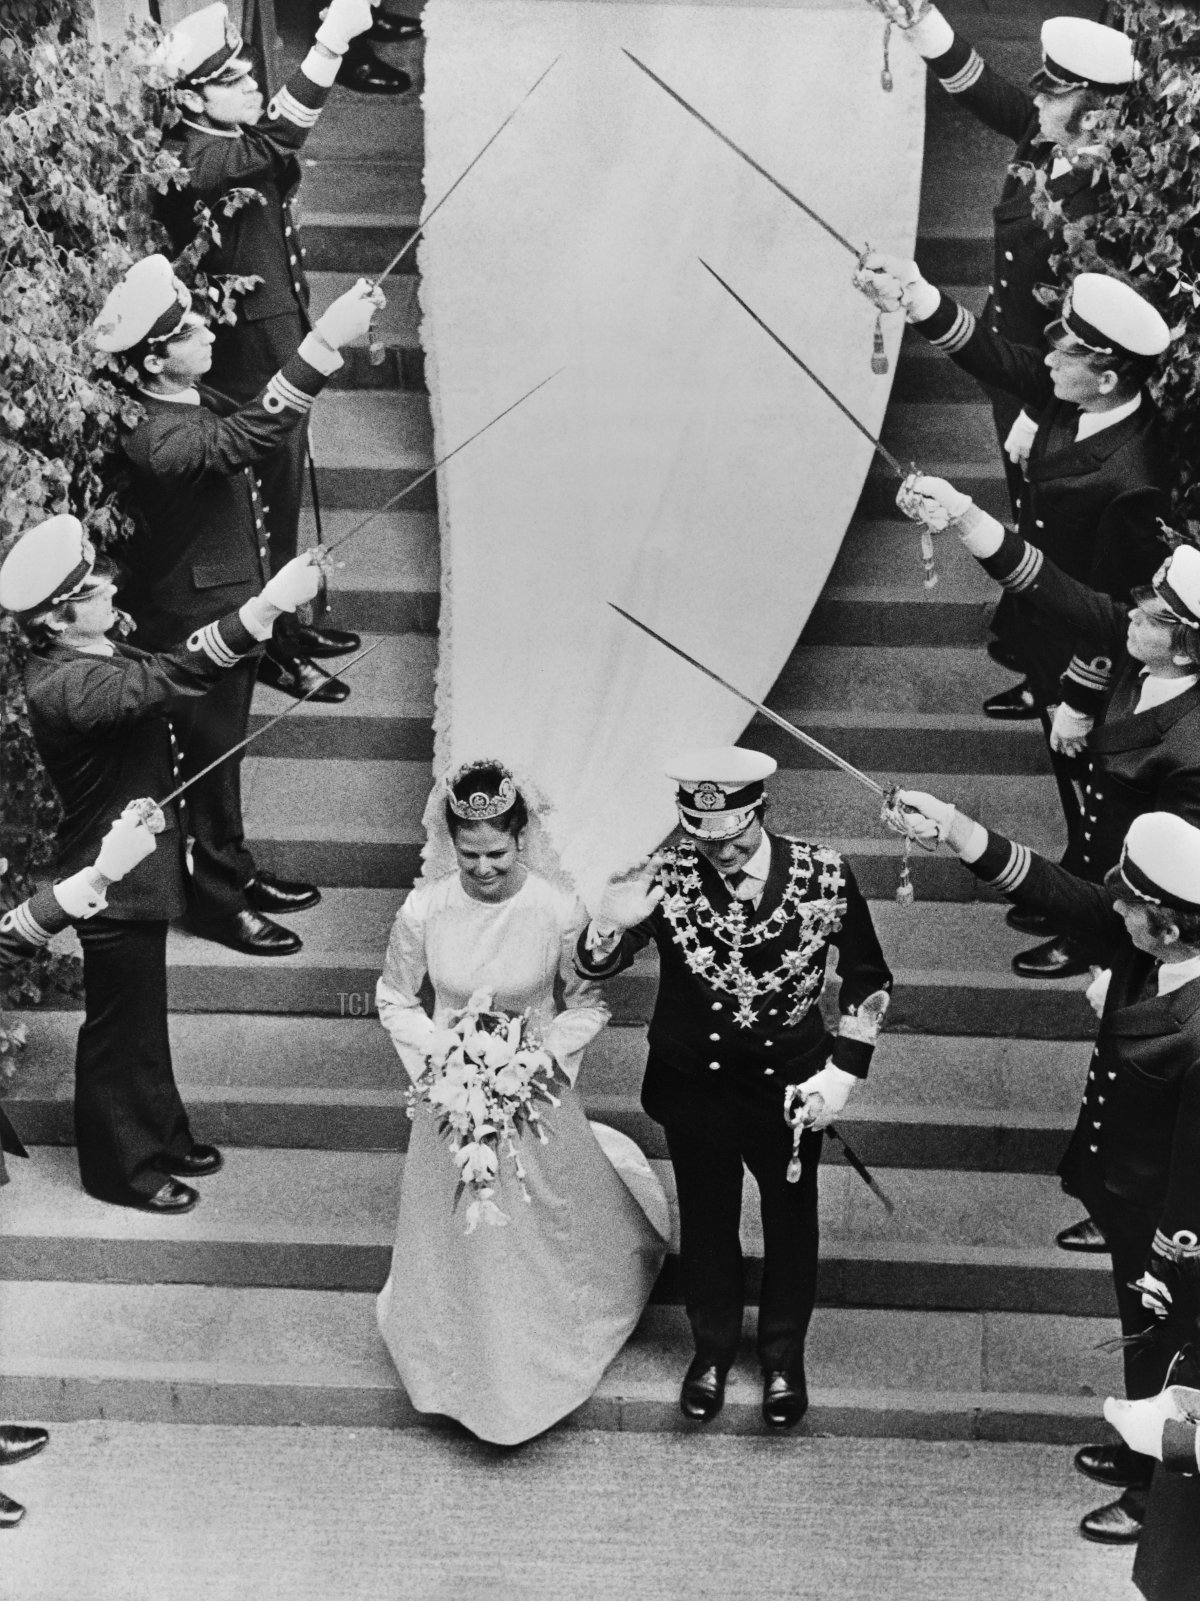 """A picture taken on June 19, 1976 in Stockholm shows King Carl XVI Gustaf of Sweden with Miss Silvia Sommerlath climbing down the stairs of the """"Storkyrken"""" Refomed church during their wedding ceremony"""